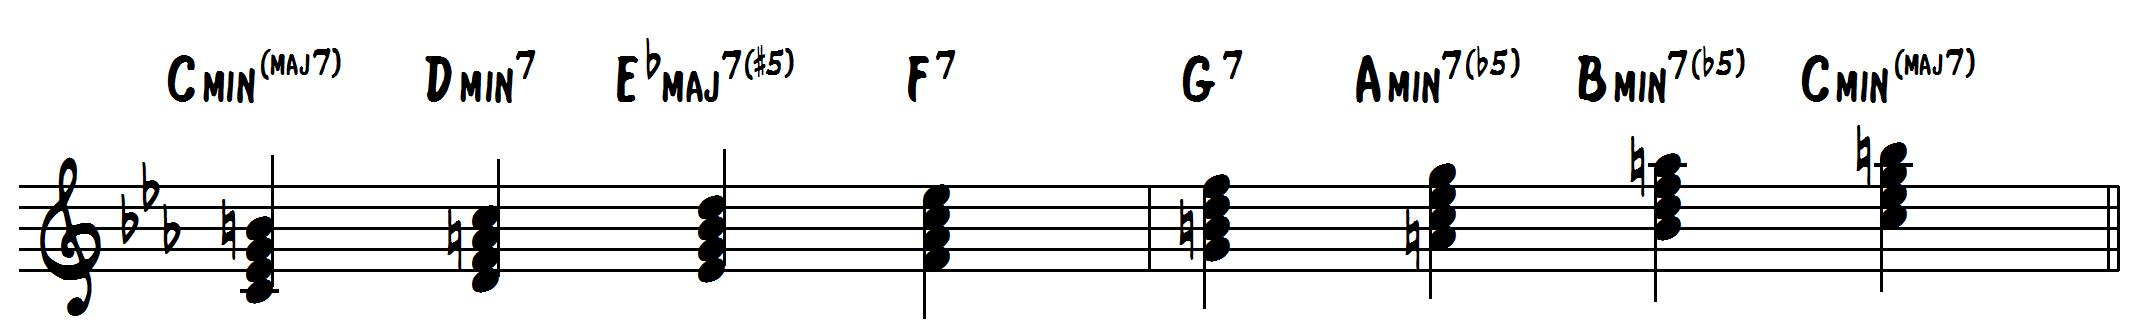 how to harmonize minor scales with 7th chords learn jazz